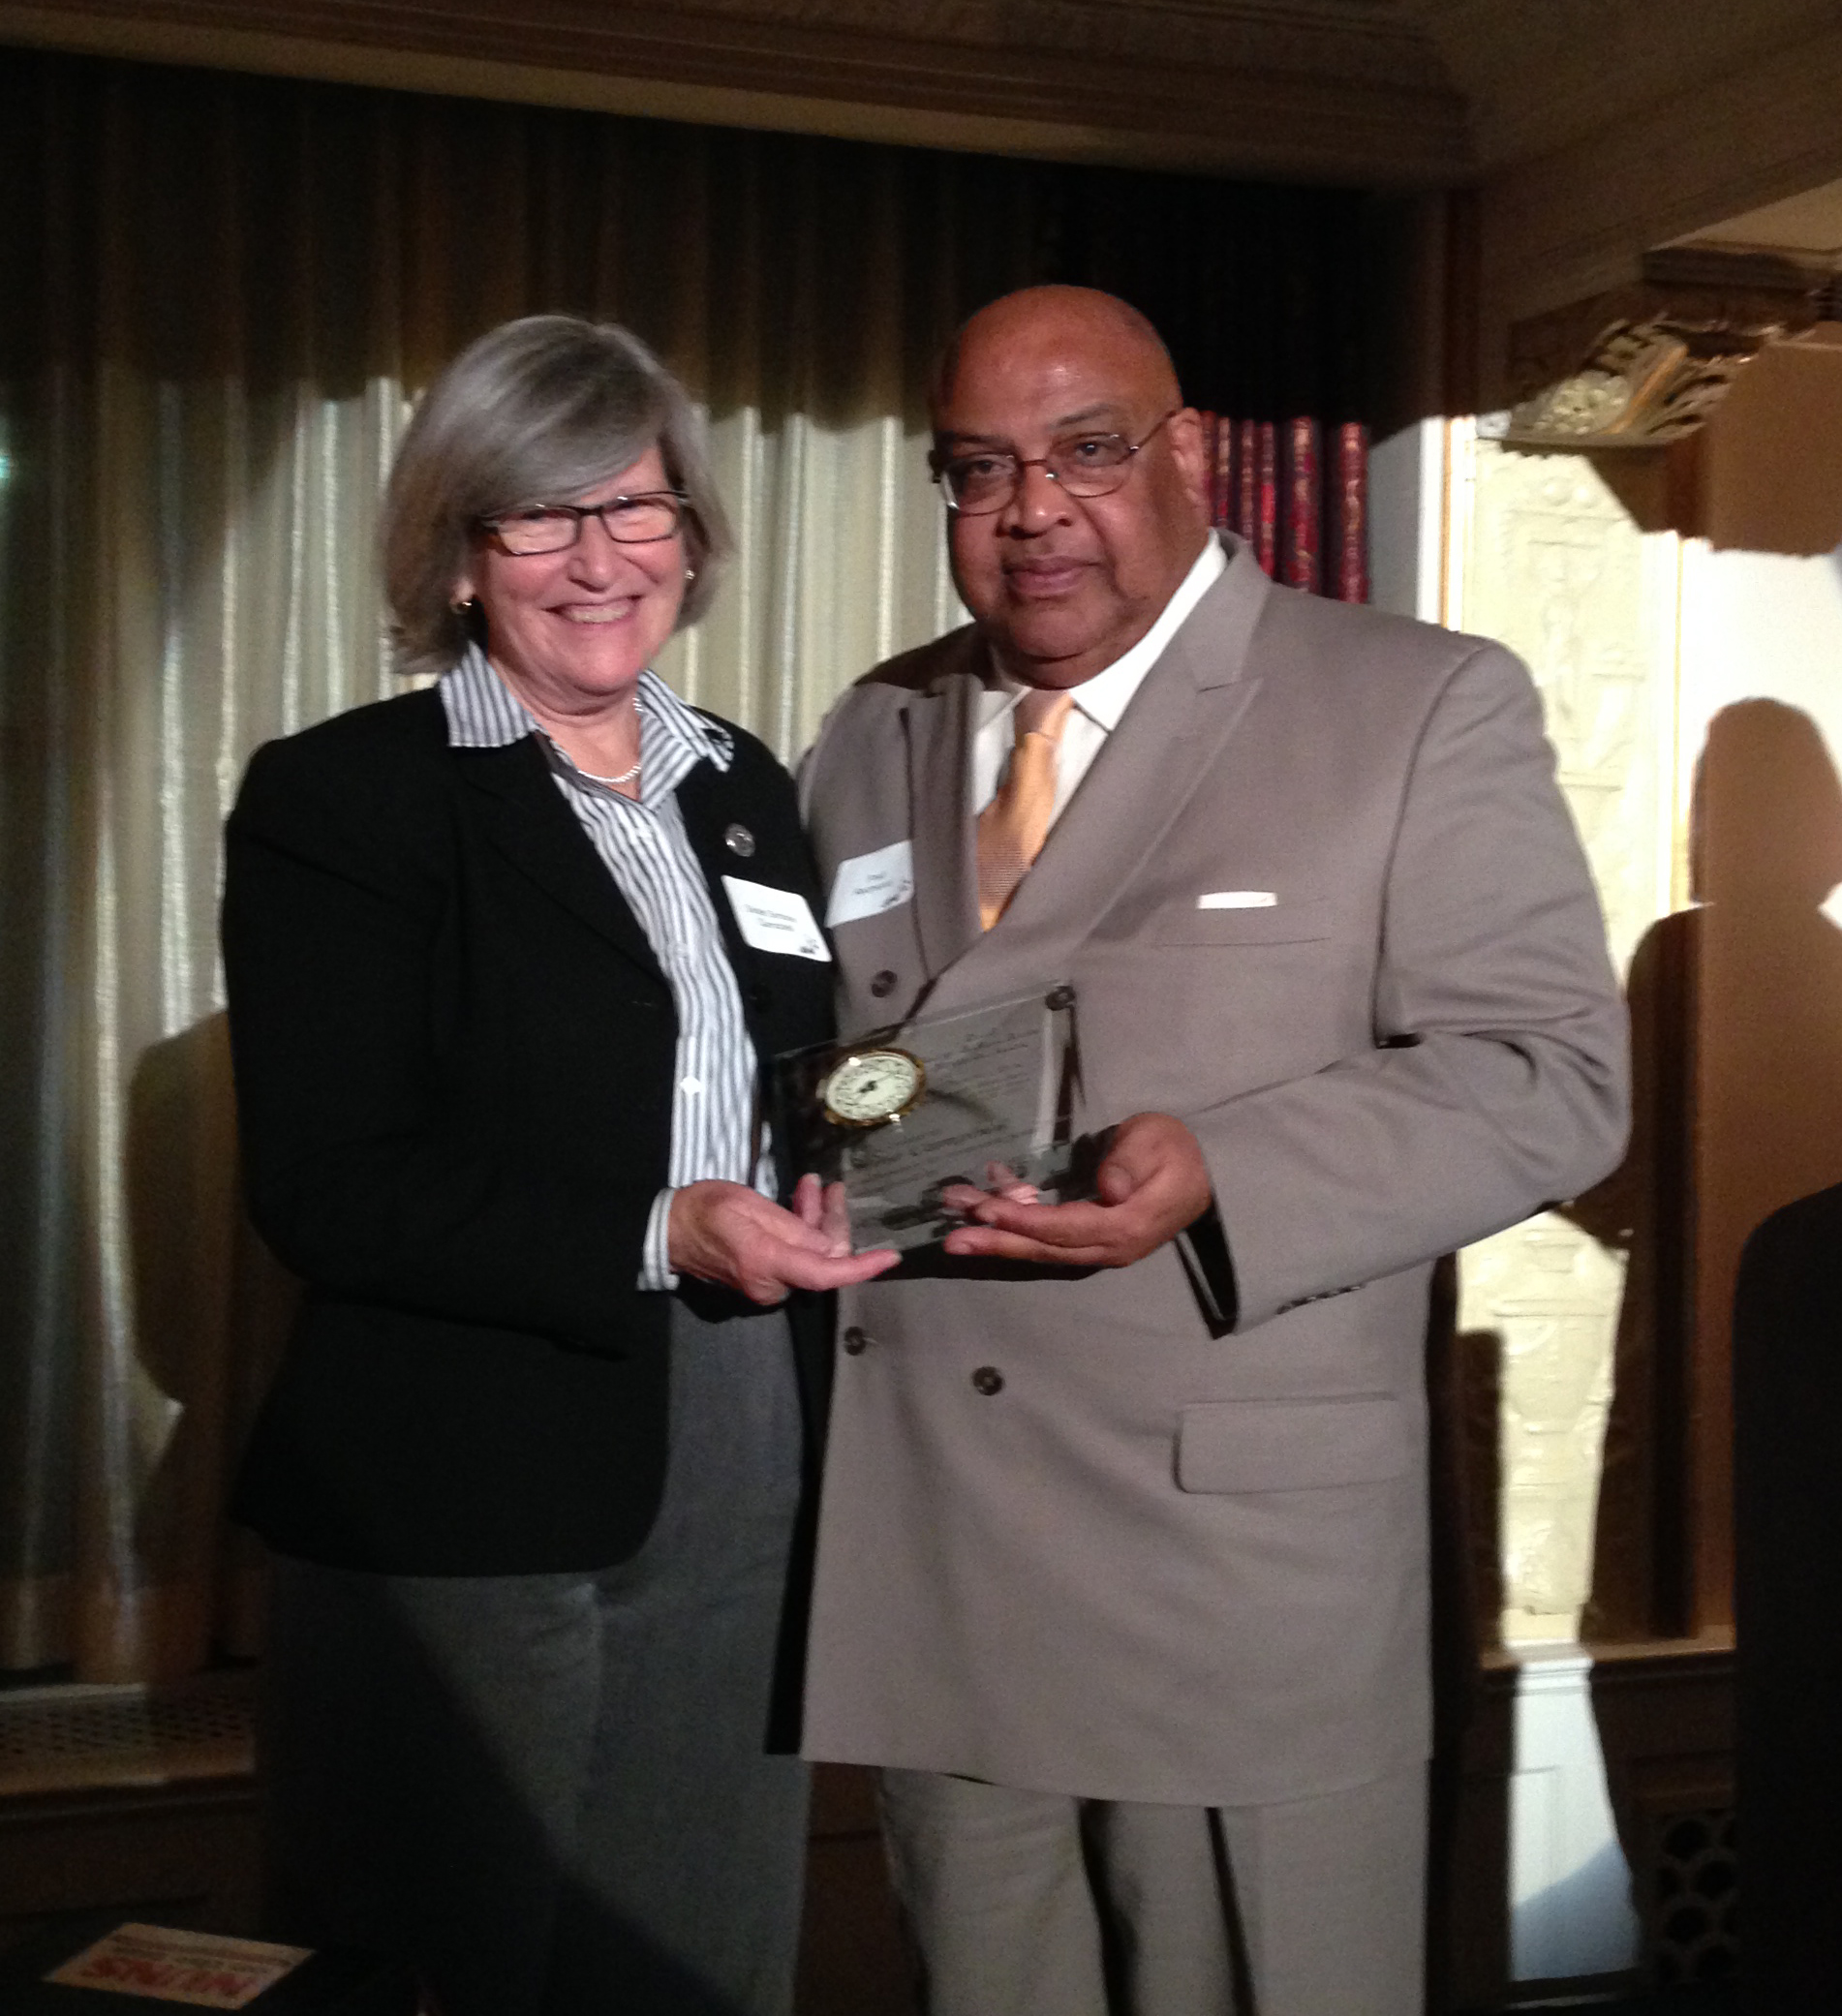 USW International Vice President Fred Redmond and award recipient Sister Simone Campbell